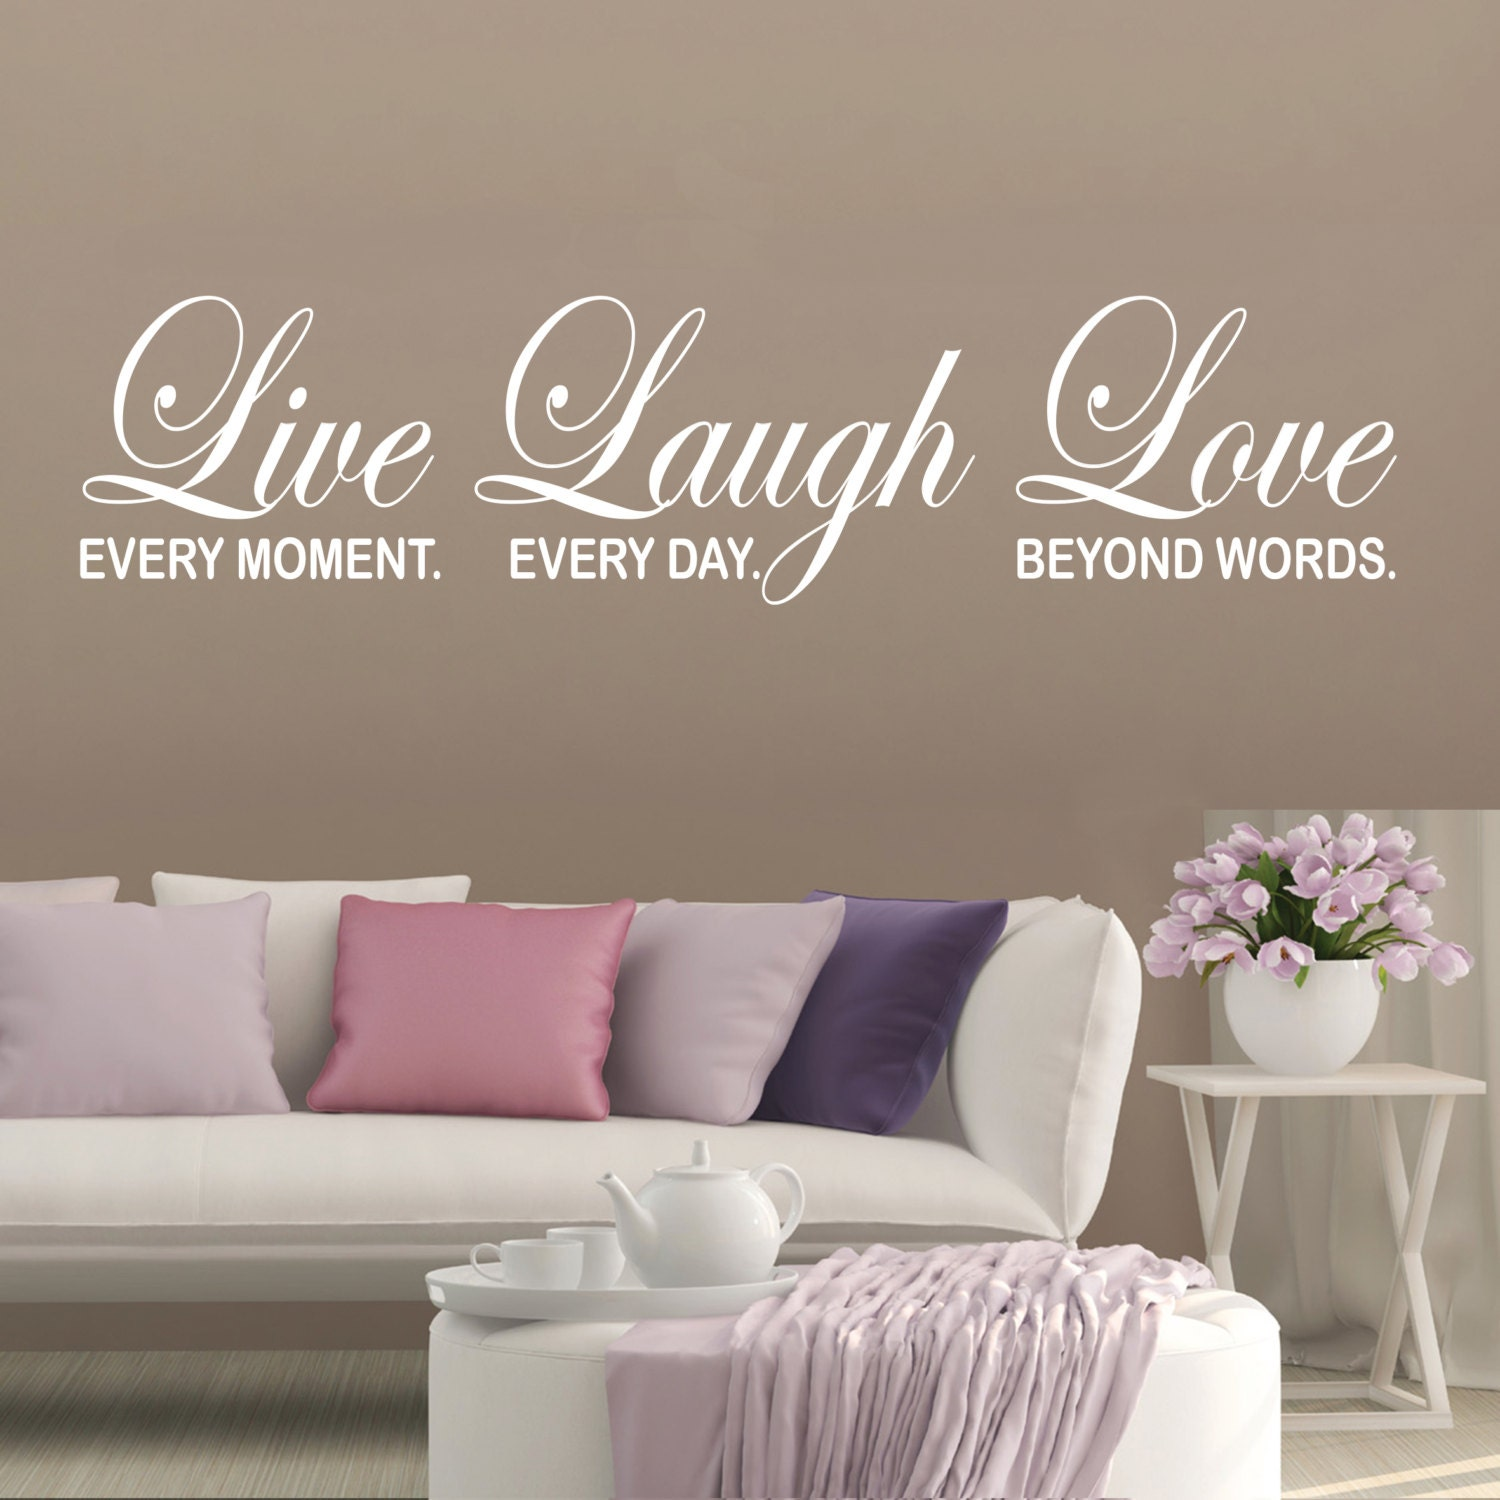 Bedroom wall decal inspirational quote live laugh love home for Bedroom inspiration quotes